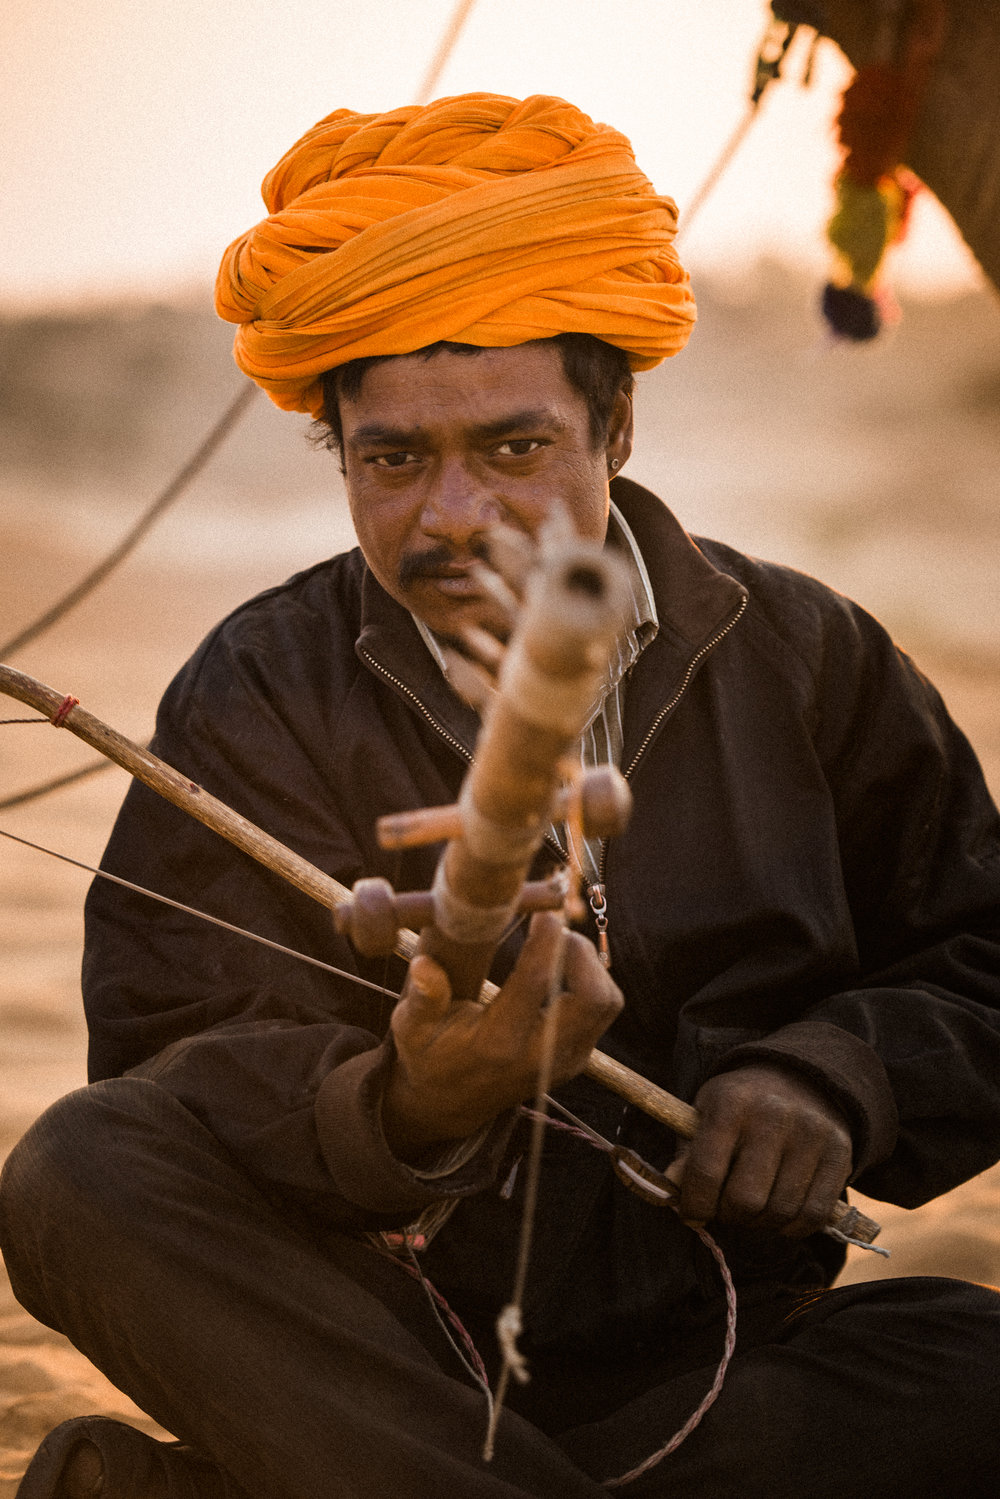 Pushkar_India_TaraShupe_Photography_069.jpg